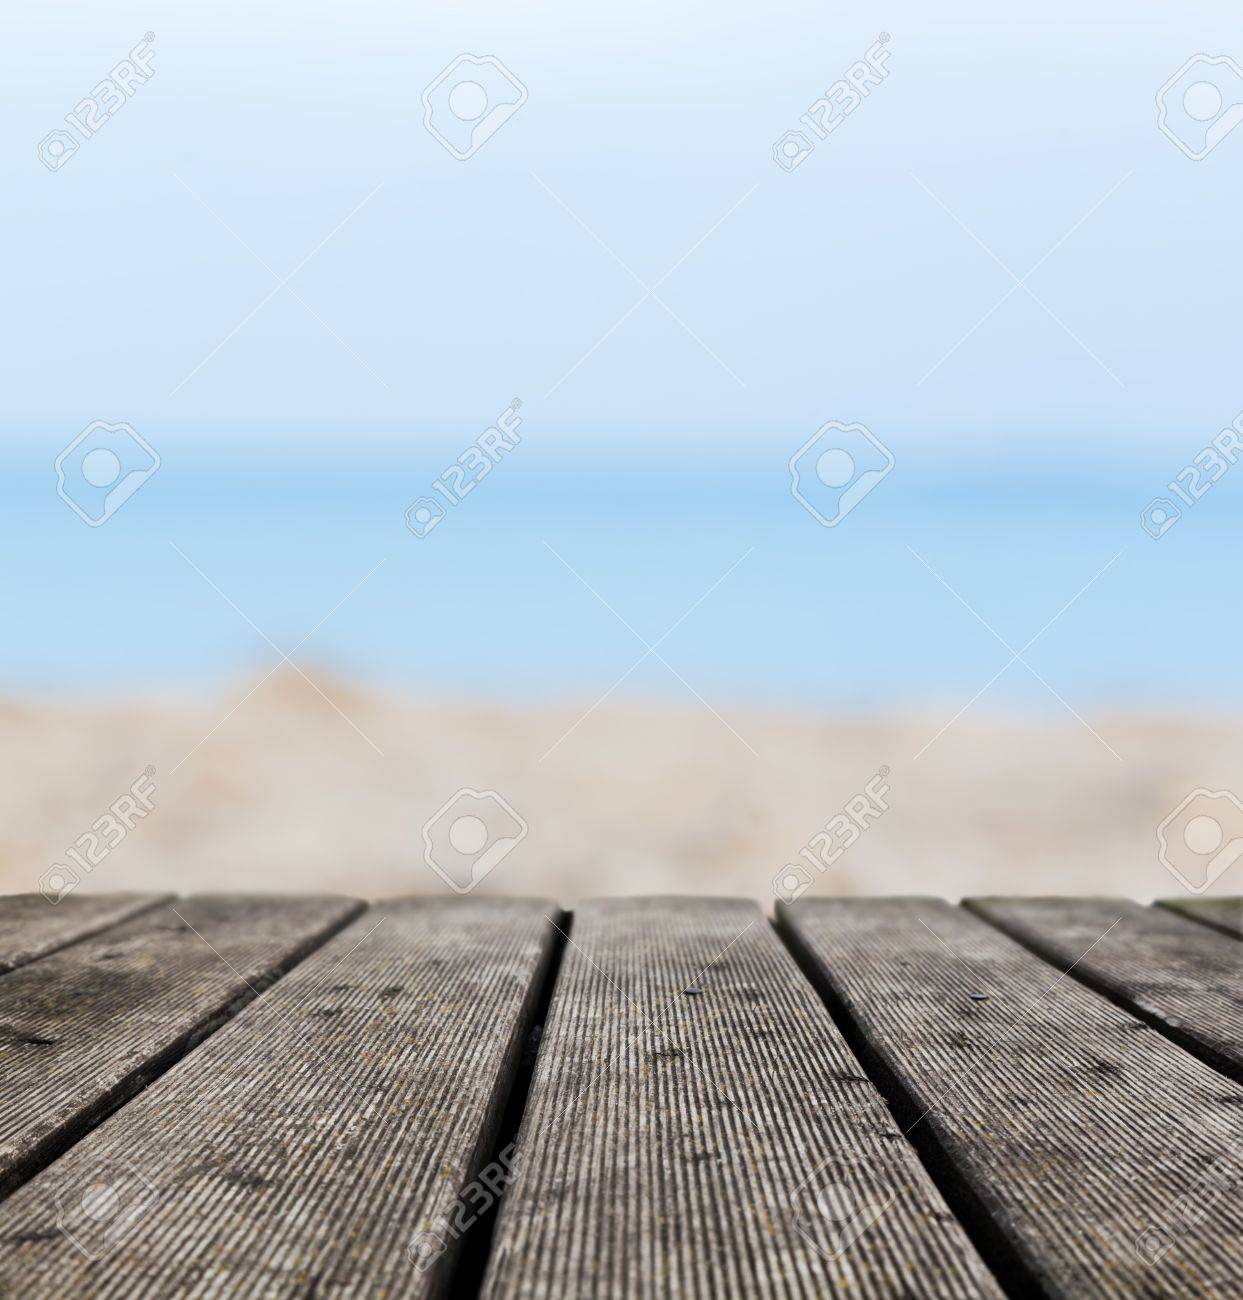 Grunge Rustic Real Wood Boards On The Beach Shore Ocean Background Place For An Object